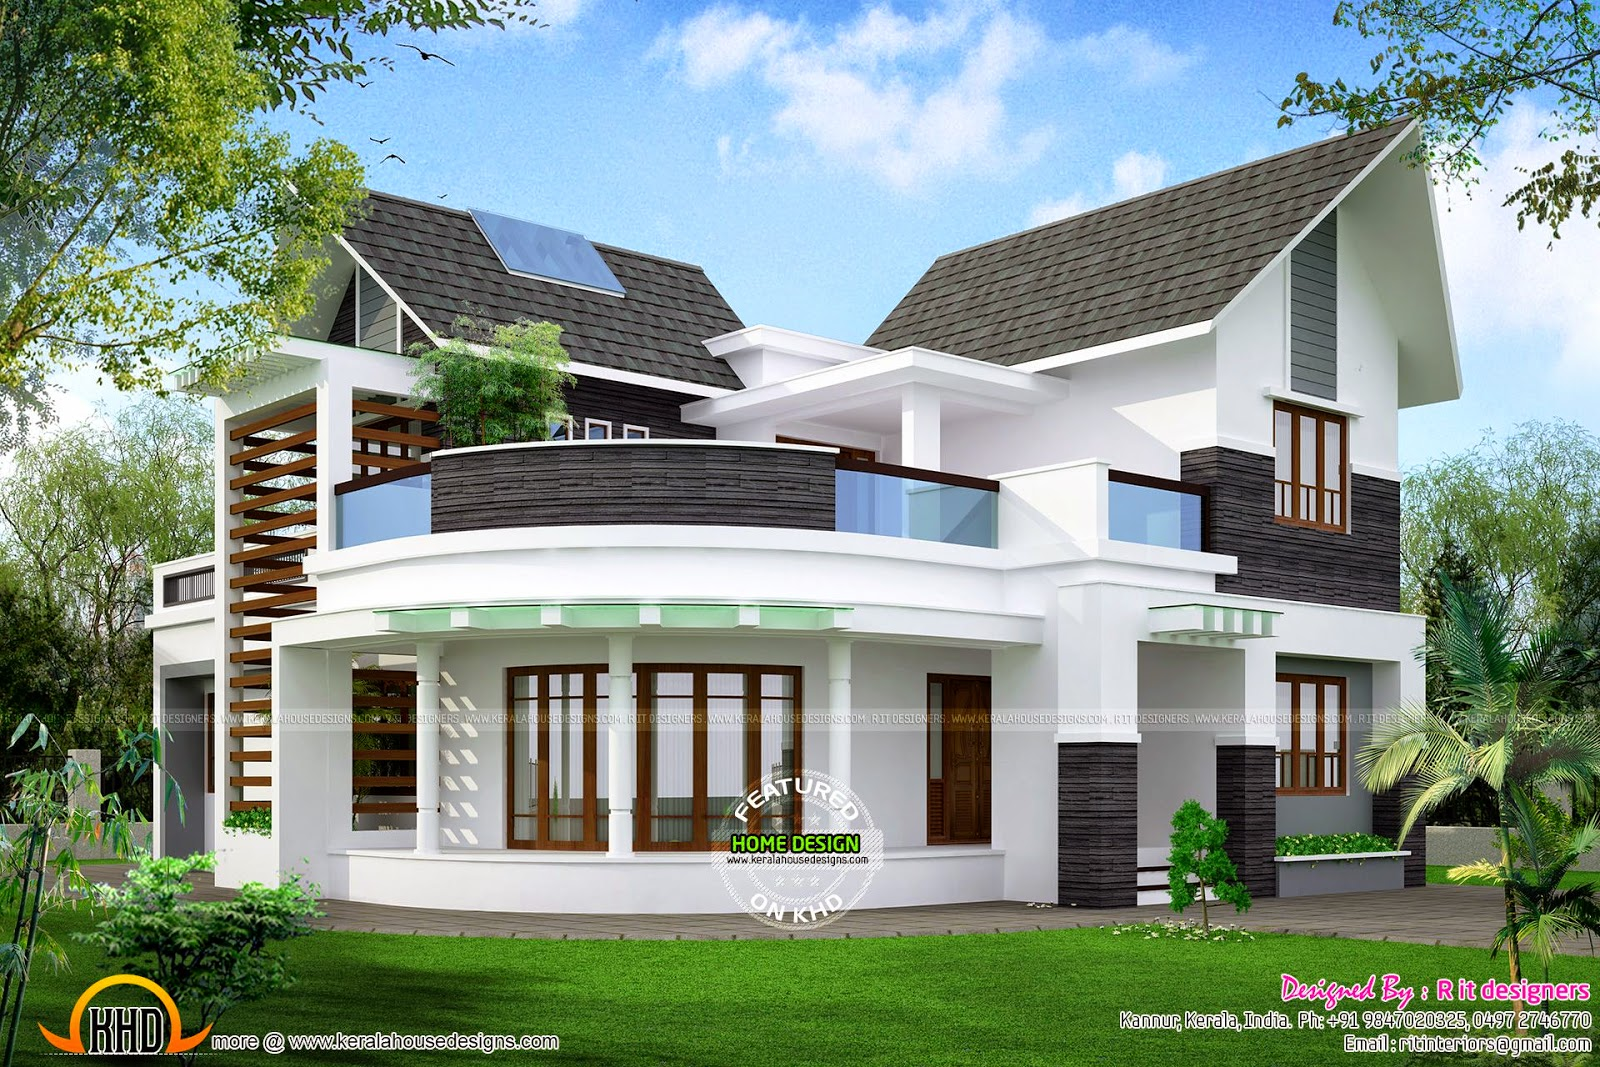 Glamorous modern unique house plans ideas ideas house Cool small home plans